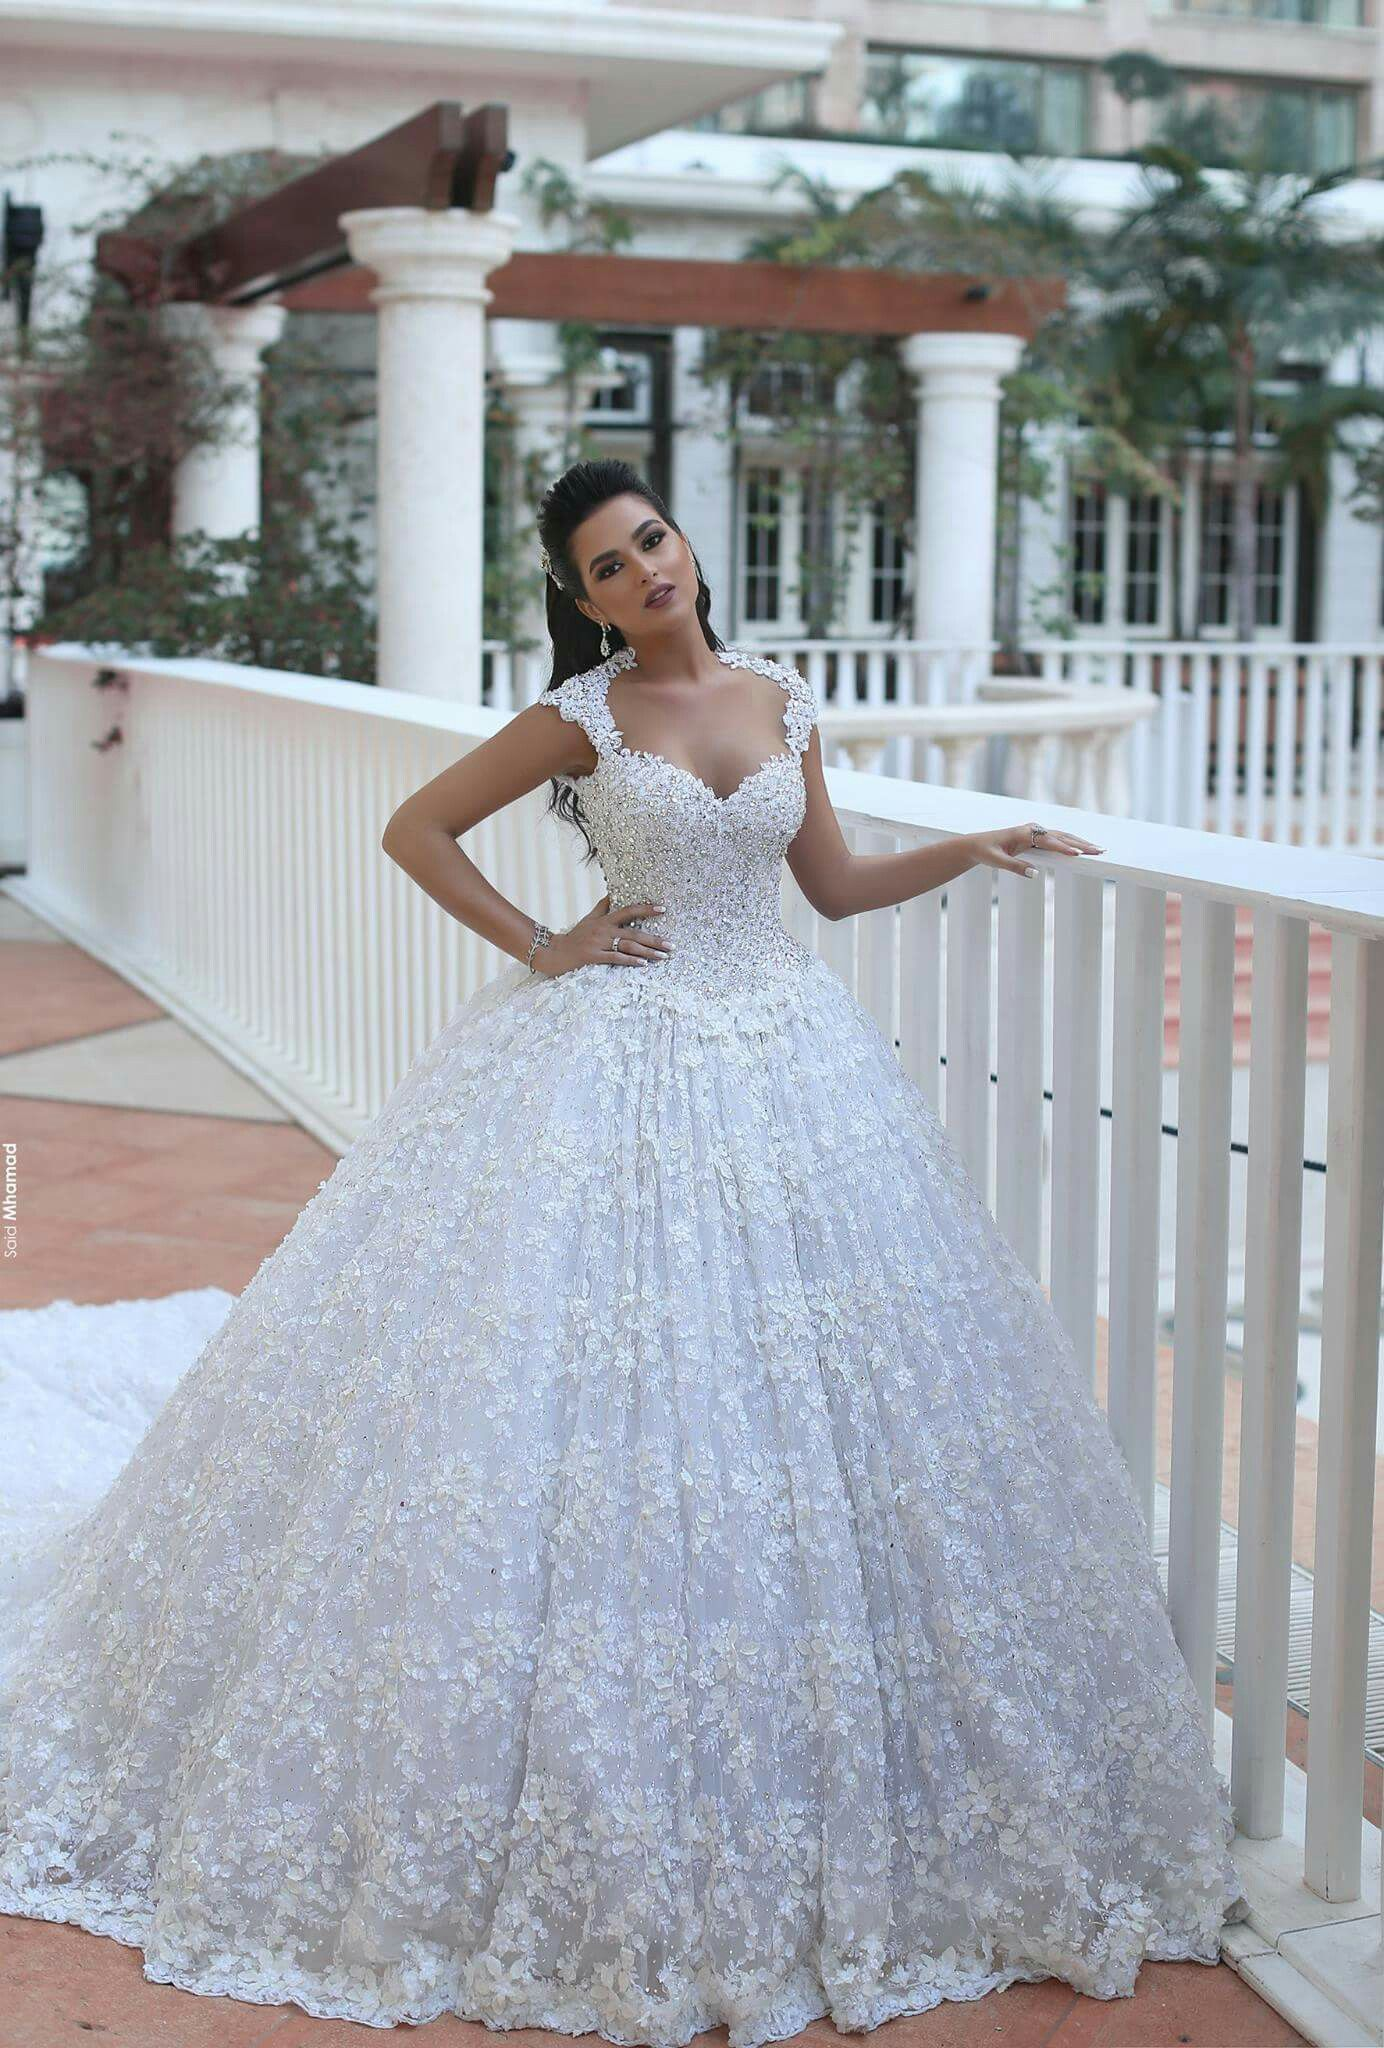 Pin by Delia Gonsalves on Dresses to Dream Ball gown